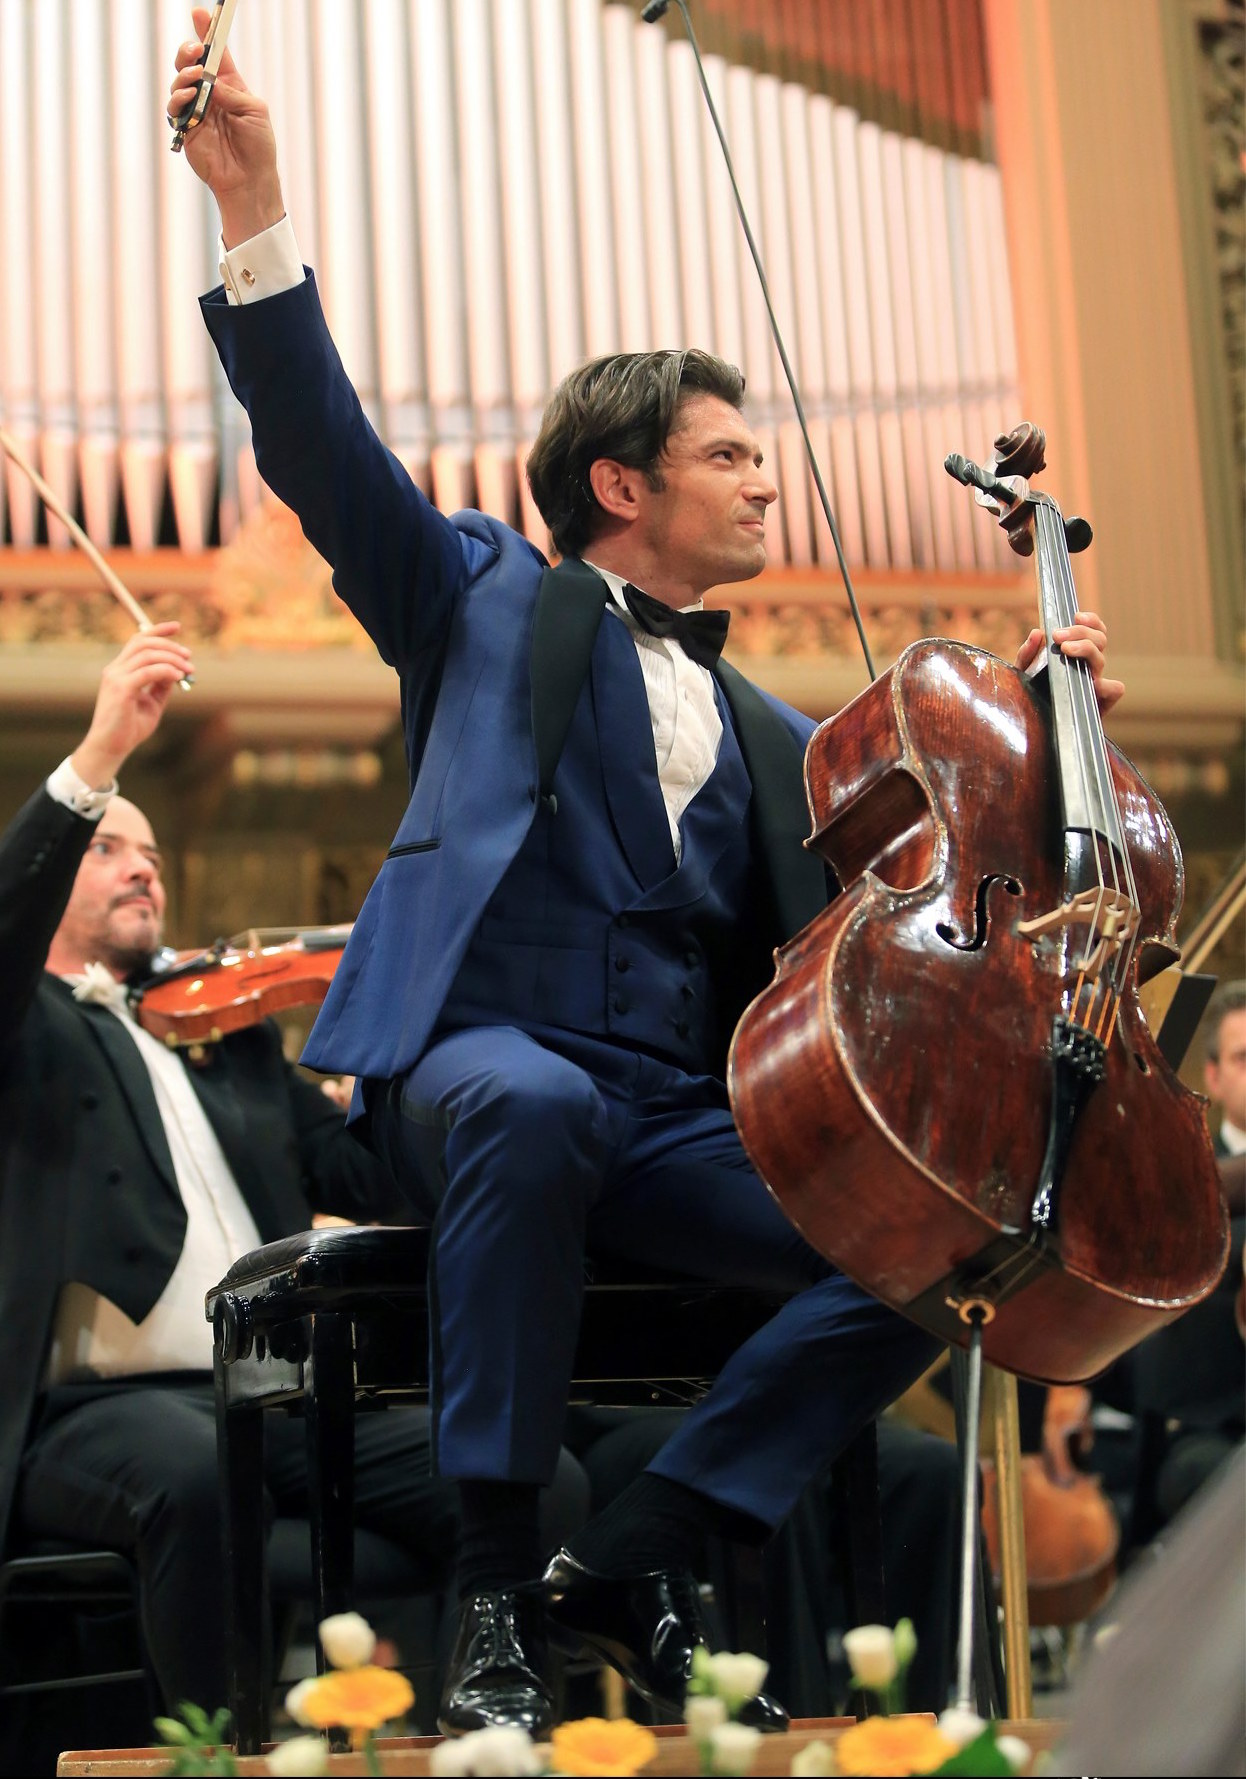 Capucon cellist French classical music live performance Enescu Festival Bucharest stage